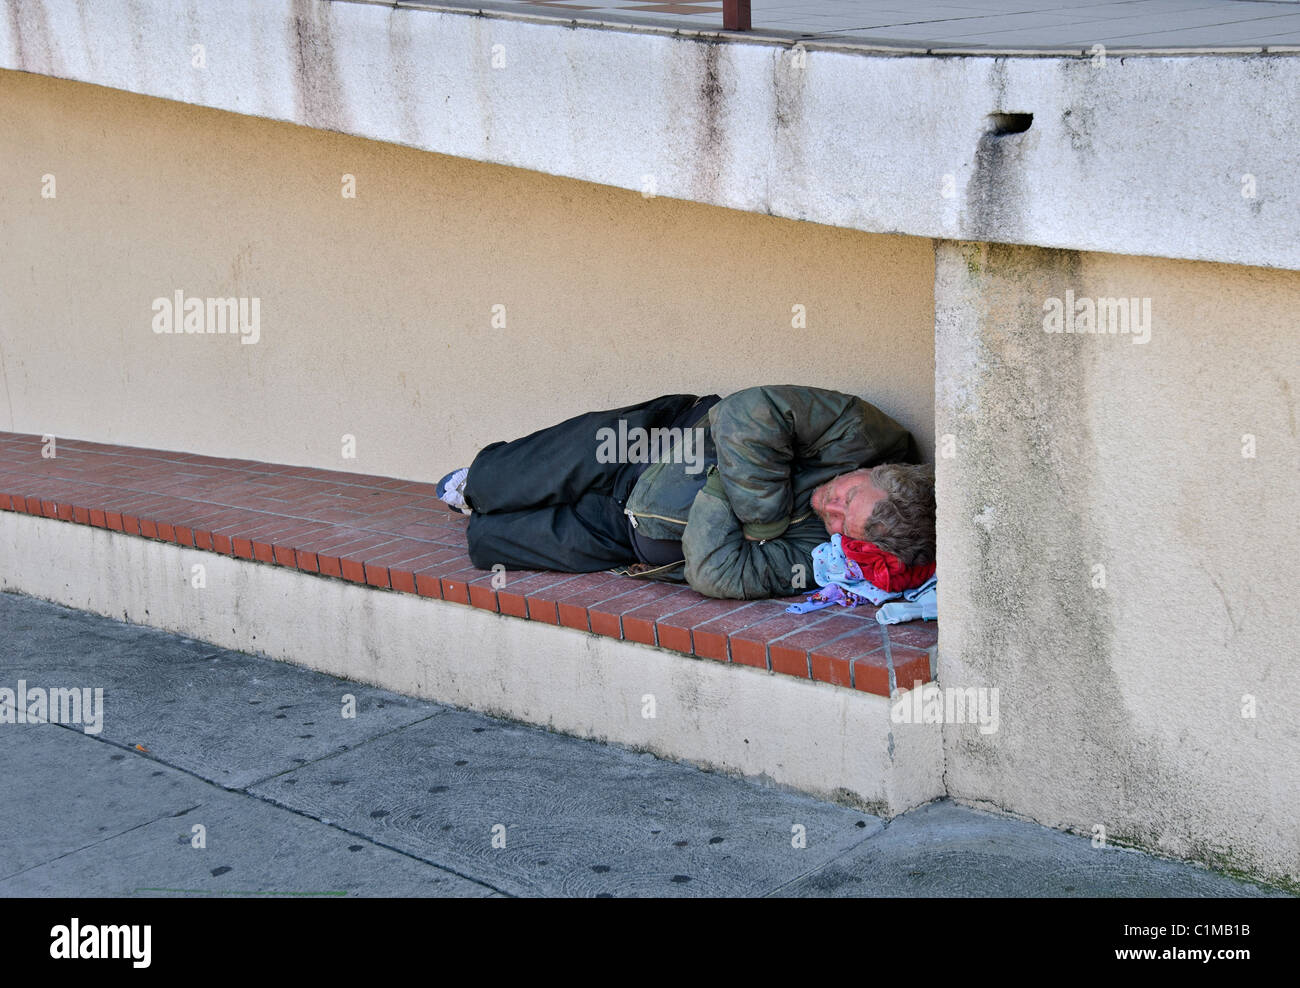 A homeless man sleeping by a local church. - Stock Image